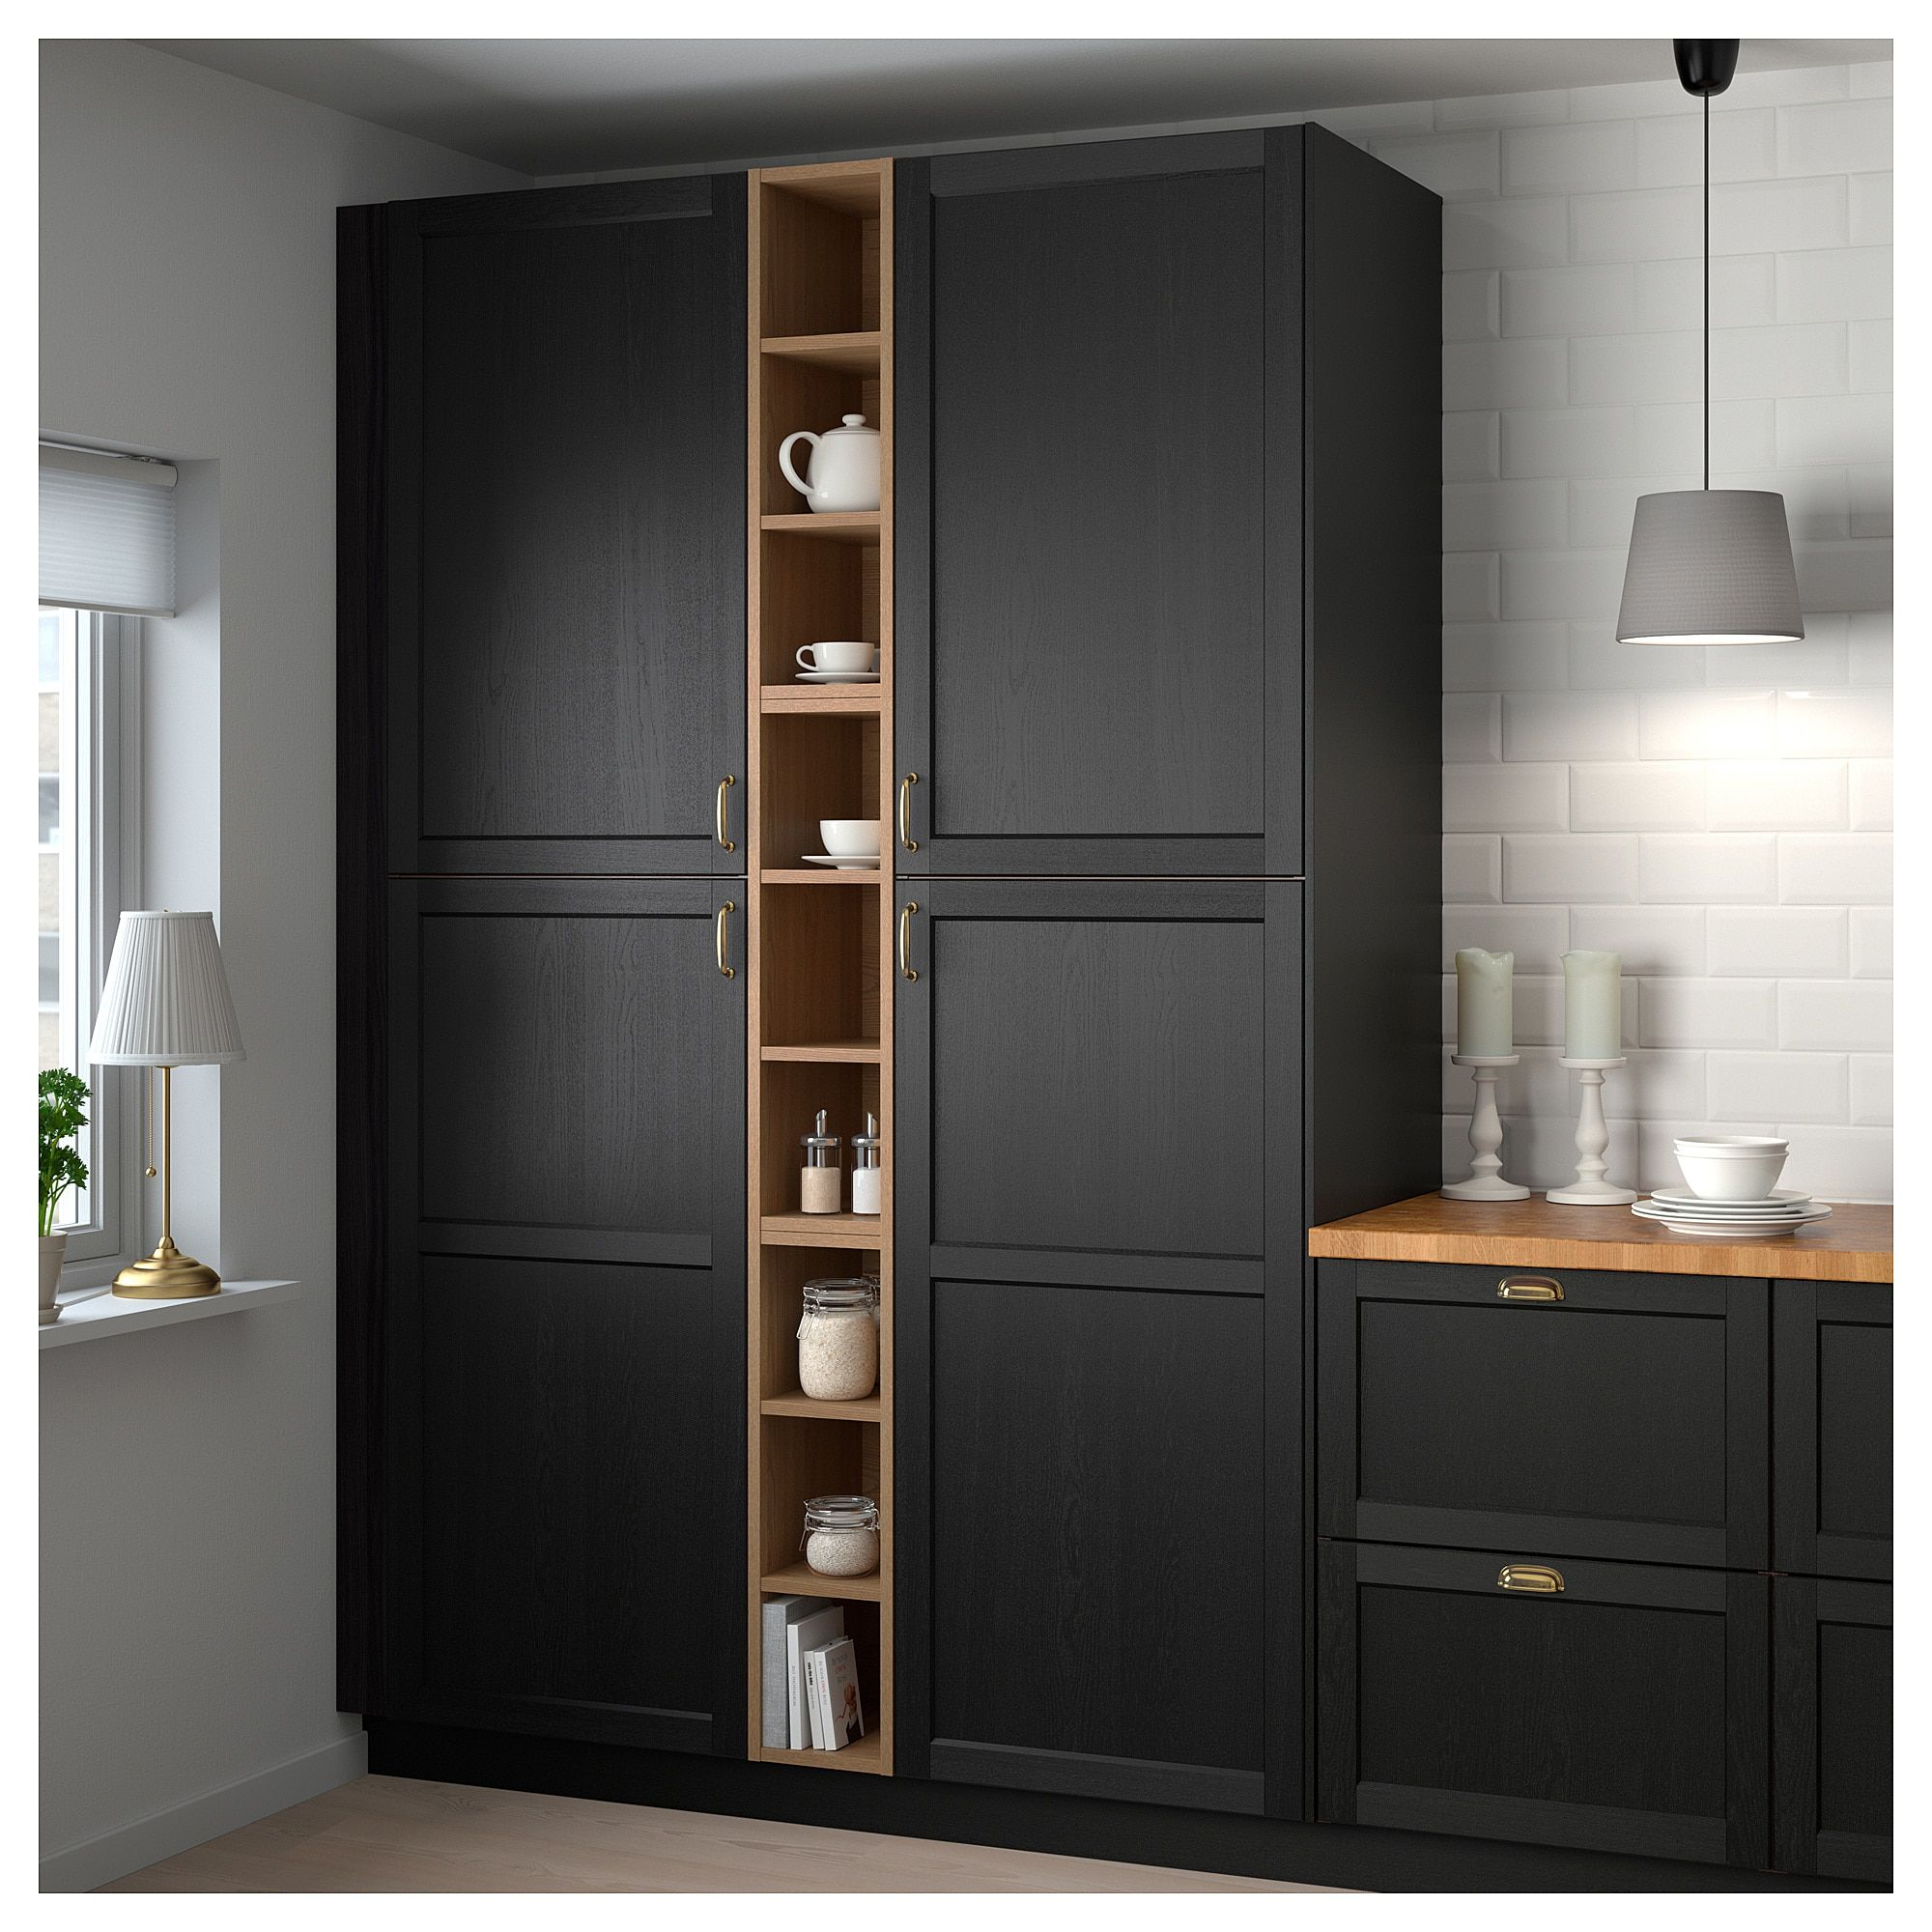 Vadholma Open Storage Brown Stained Ash 9x14 3 8x30 23x37x76 Cm Rangement Ouvert Rangement Ouvert Ikea